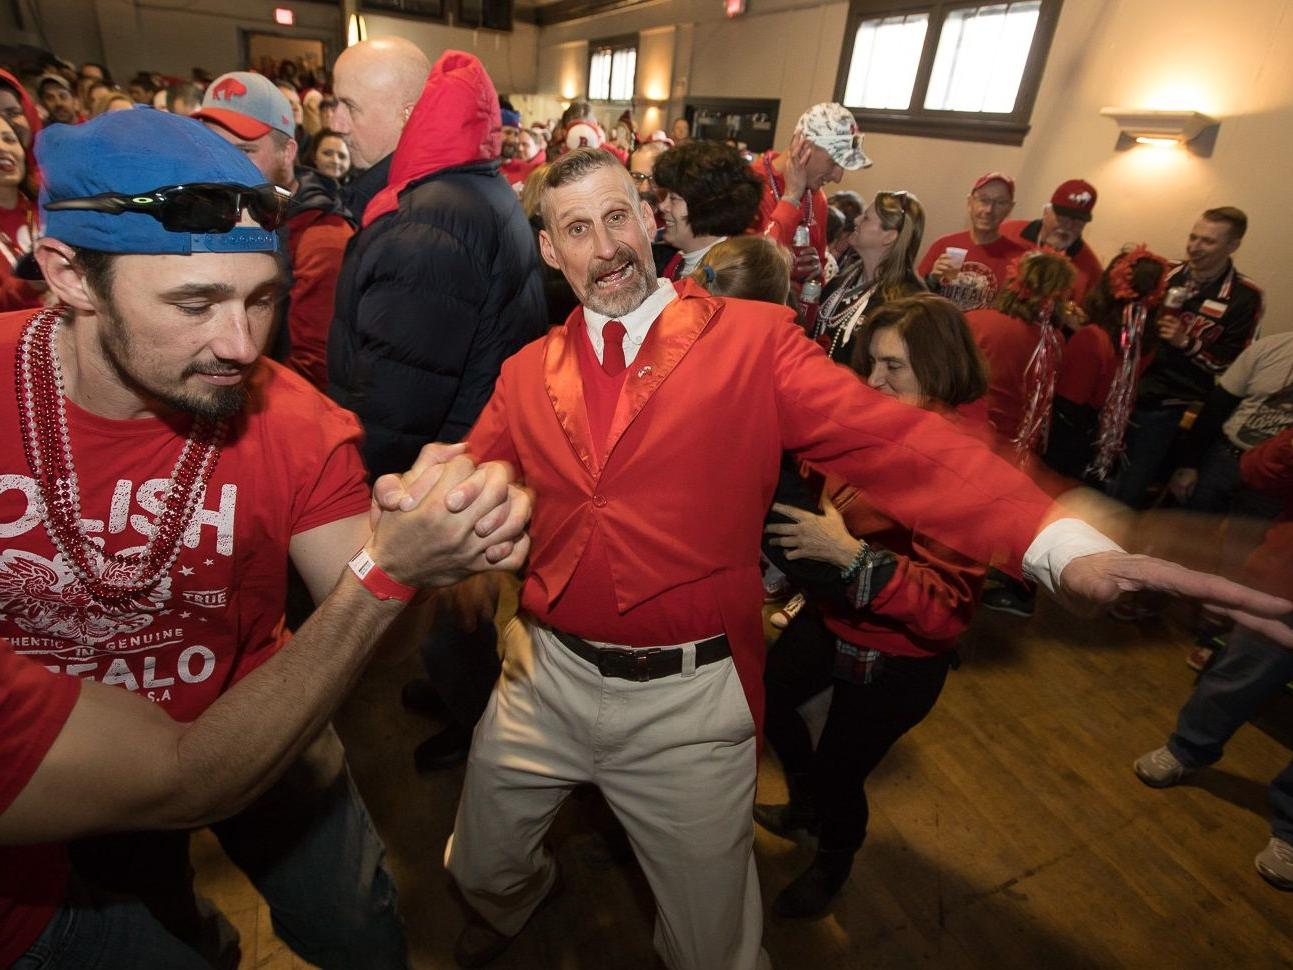 This Week In Buffalo Dominate Dyngus Day Entertainment Buffalonews Com